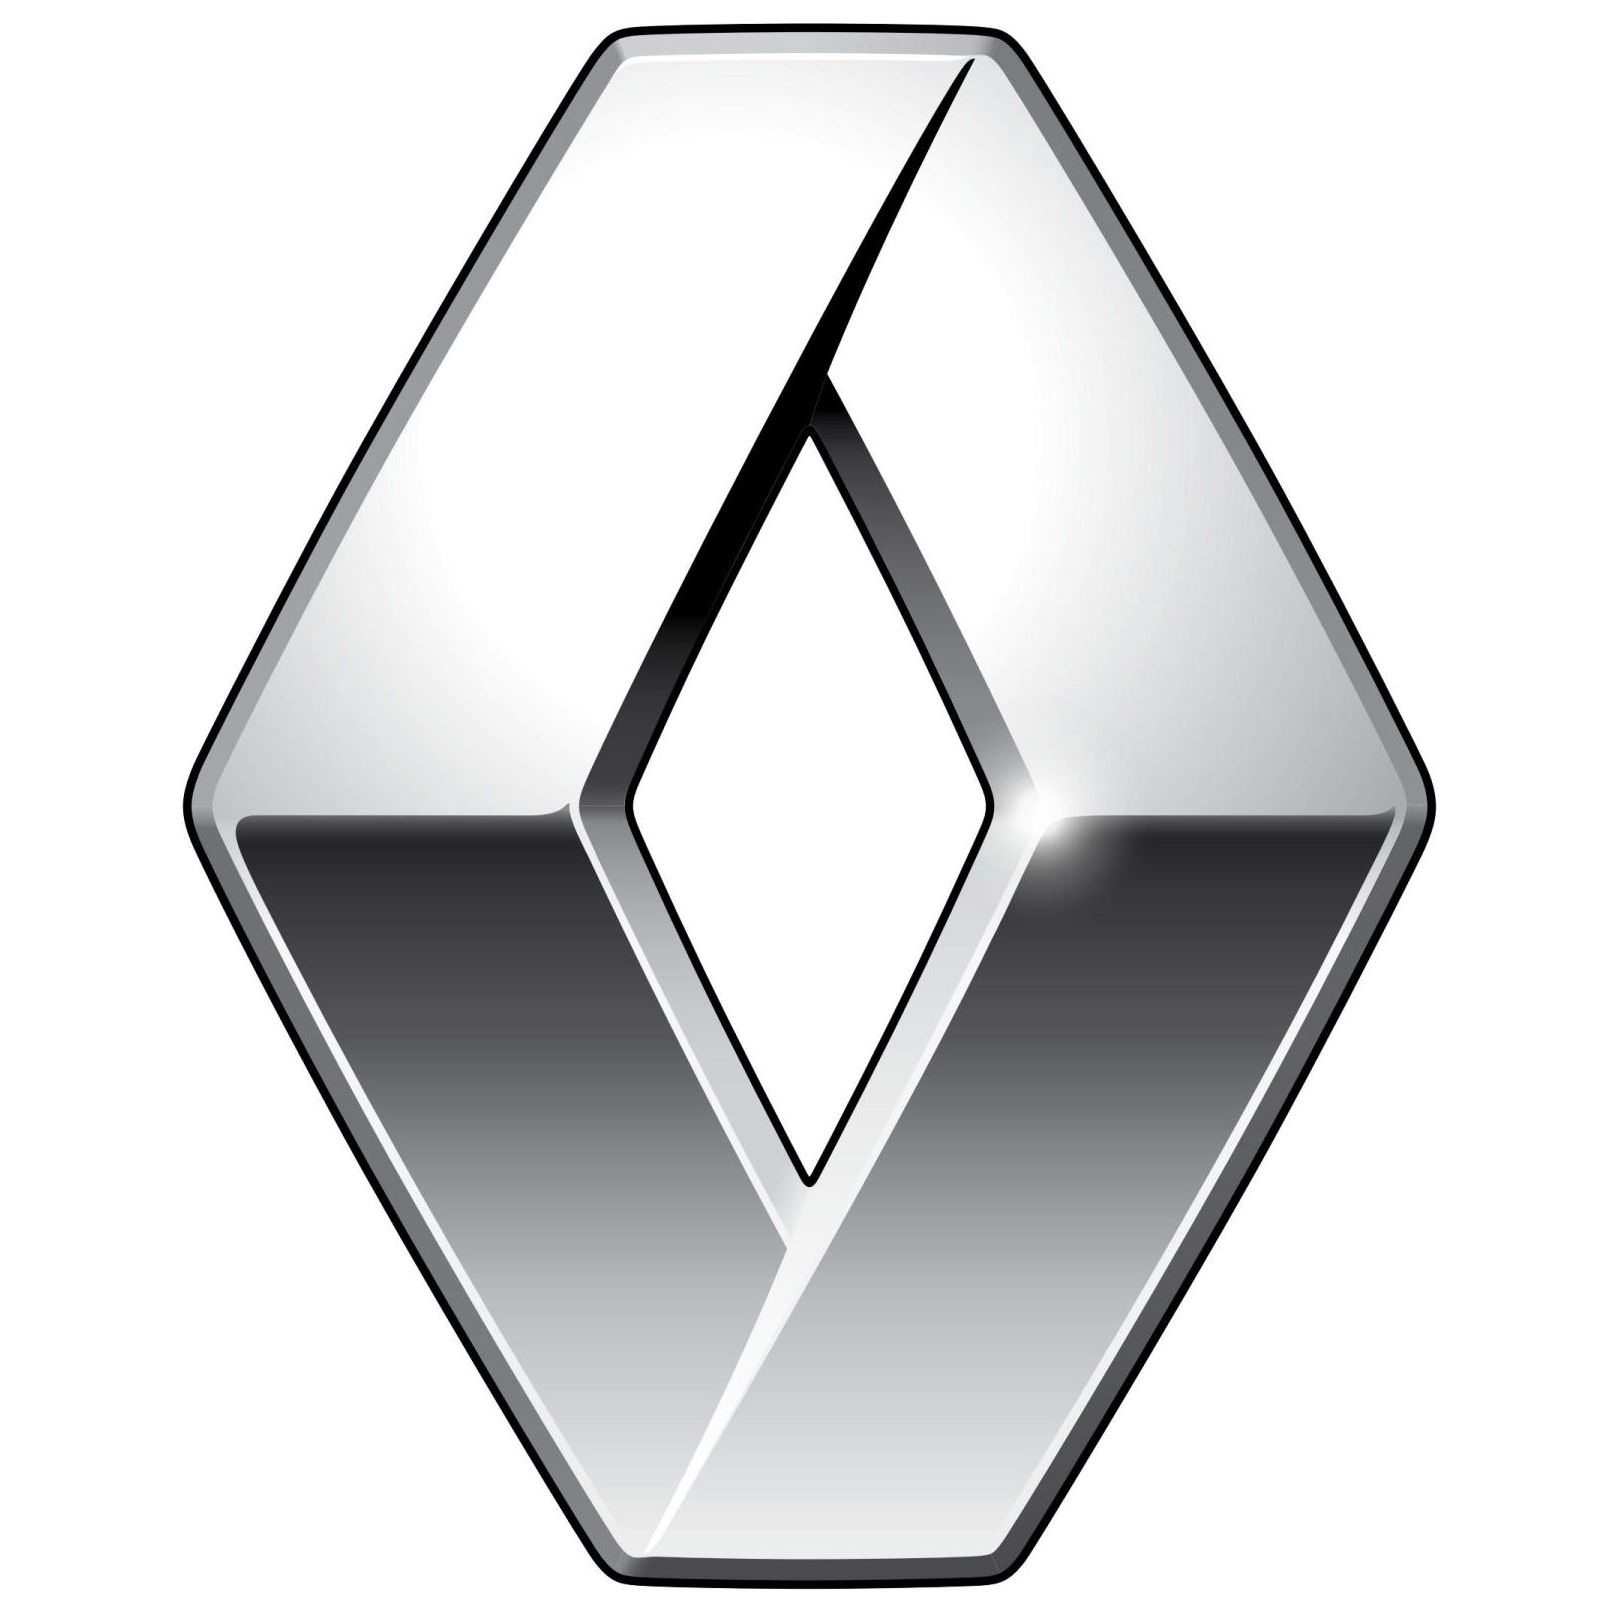 renault new logo 2015 car and motorcycle logos pinterest logos free downloads and html. Black Bedroom Furniture Sets. Home Design Ideas